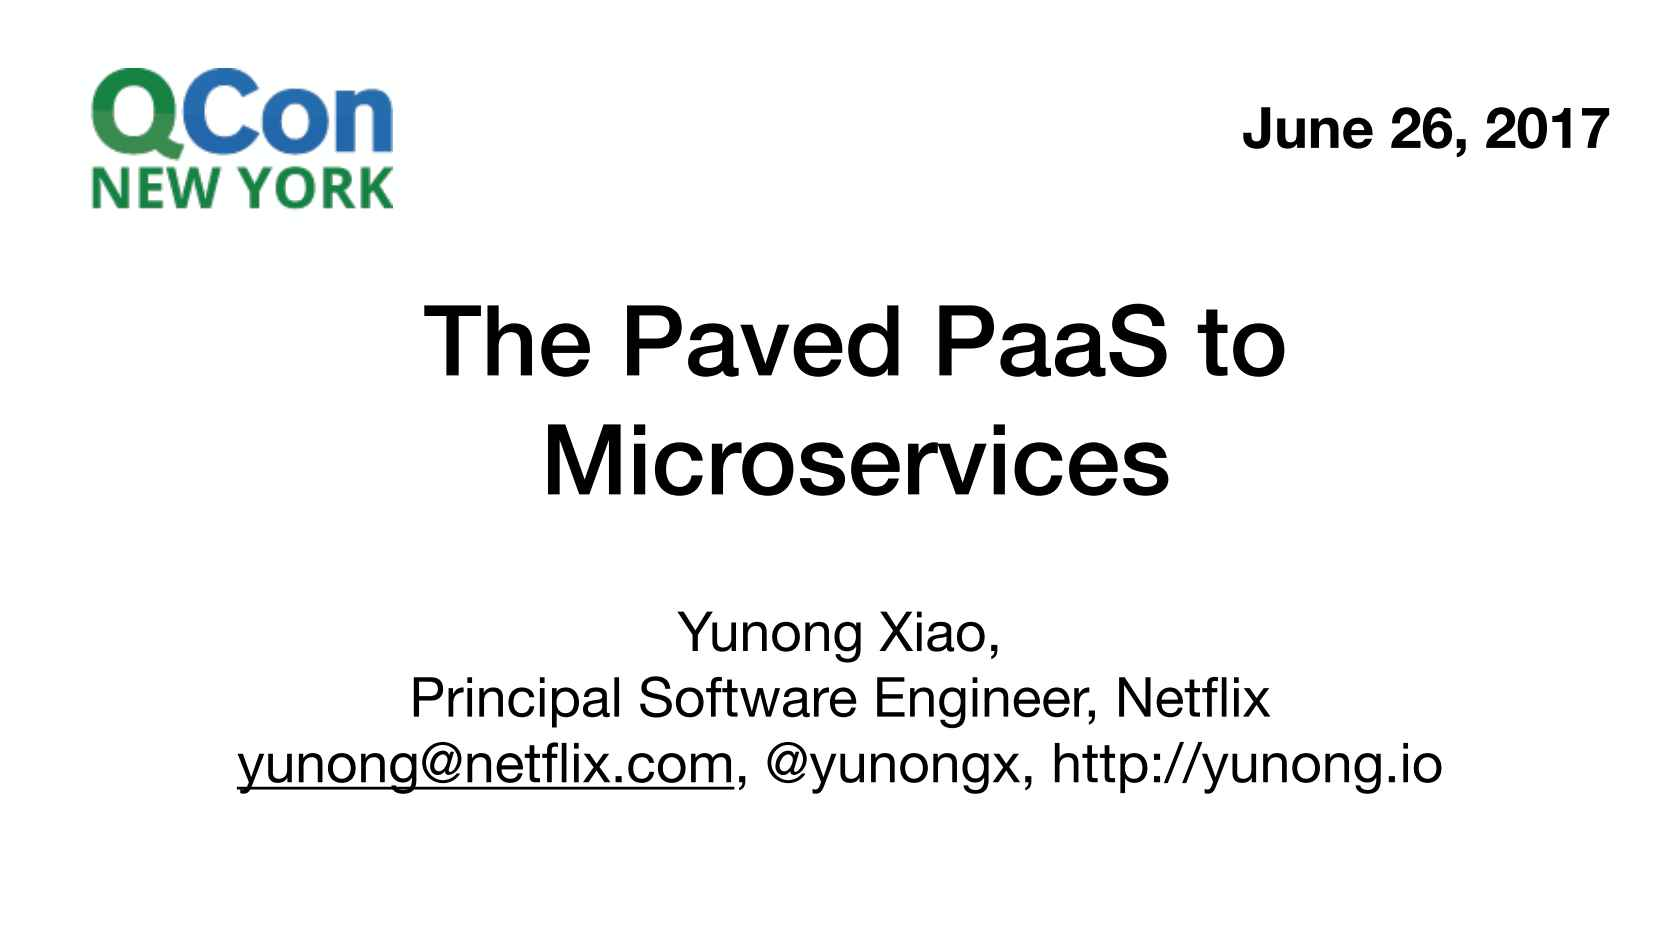 The Paved PaaS to Microservices at Netflix